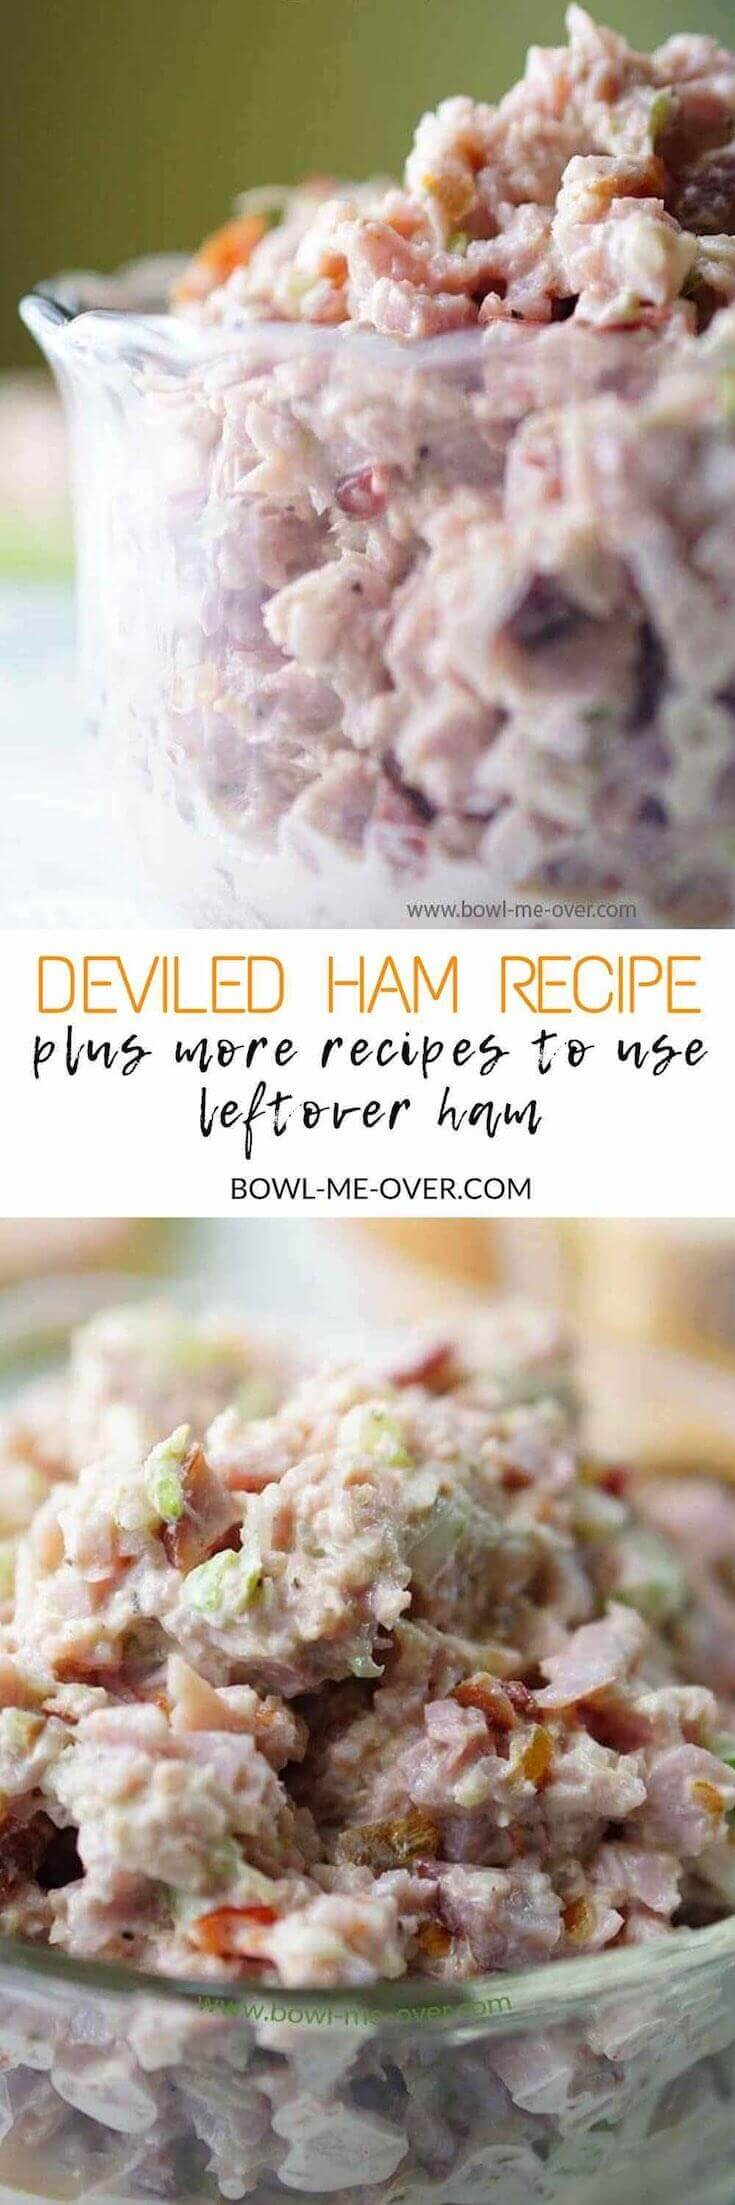 What to do with leftover ham? Use it to make Deviled Ham - salty and sweet, creamy and crunchy. Delicious on bread or crackers. #Leftovers #DeviledHam #Whattodowithleftovers #BowlMeOver